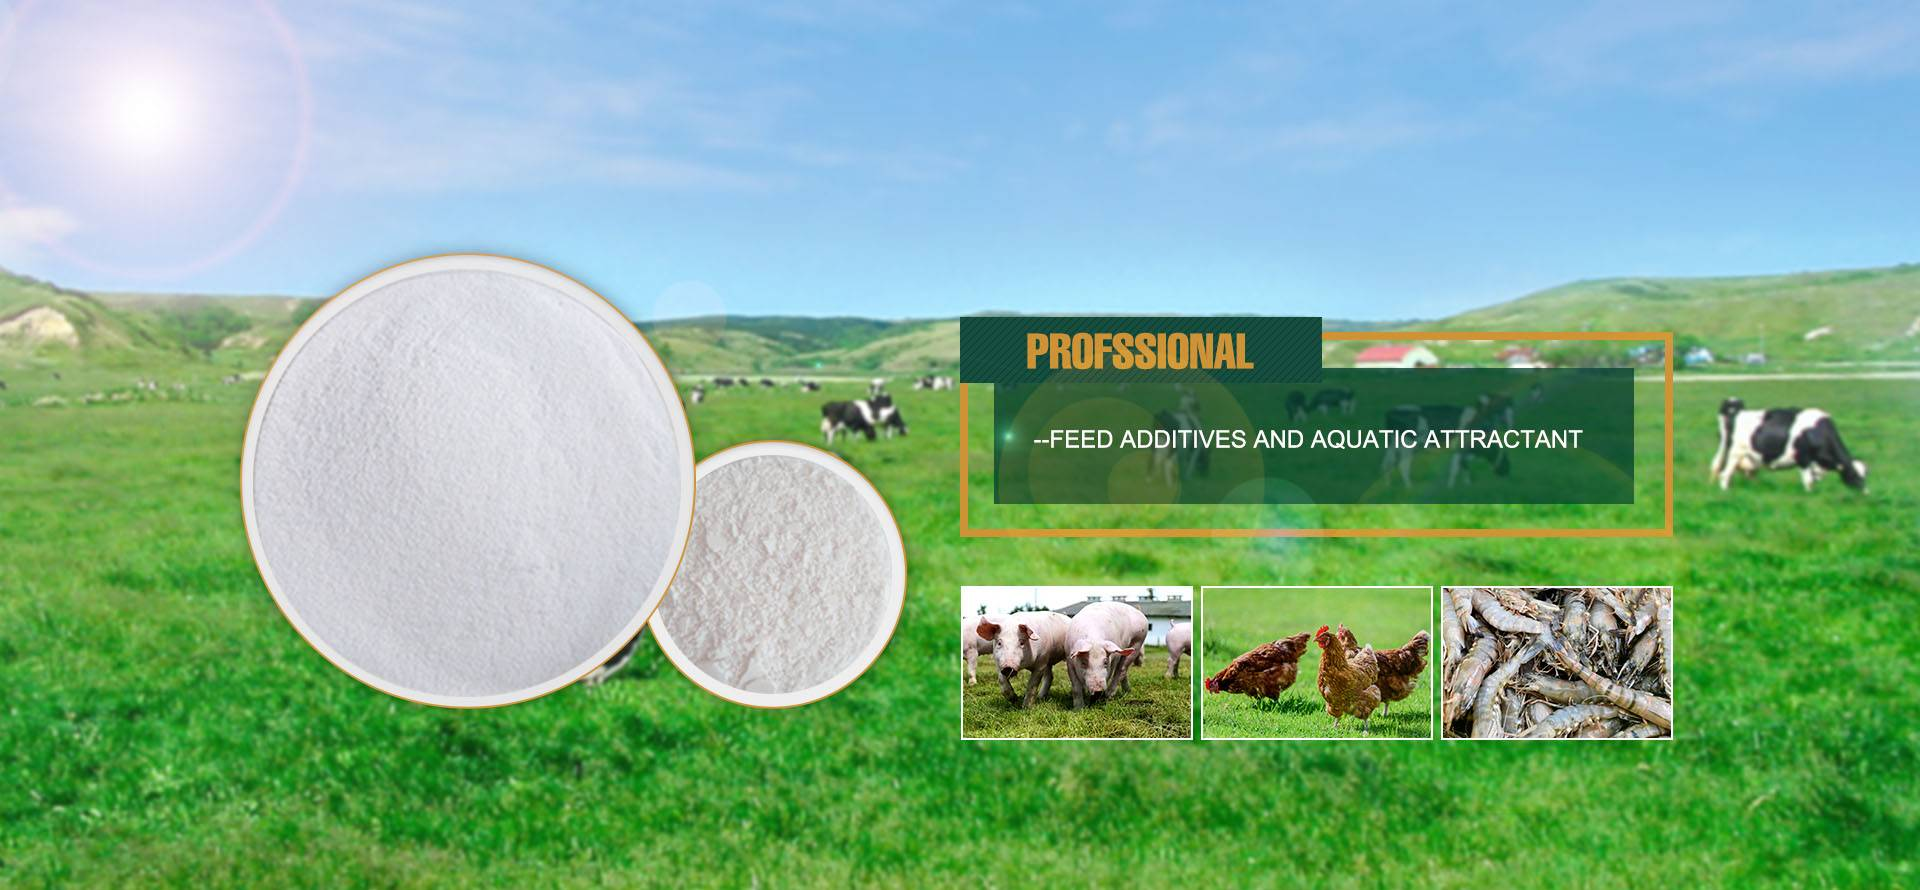 FEED ADDITIVES AND AQUATIC ATTRACTANT